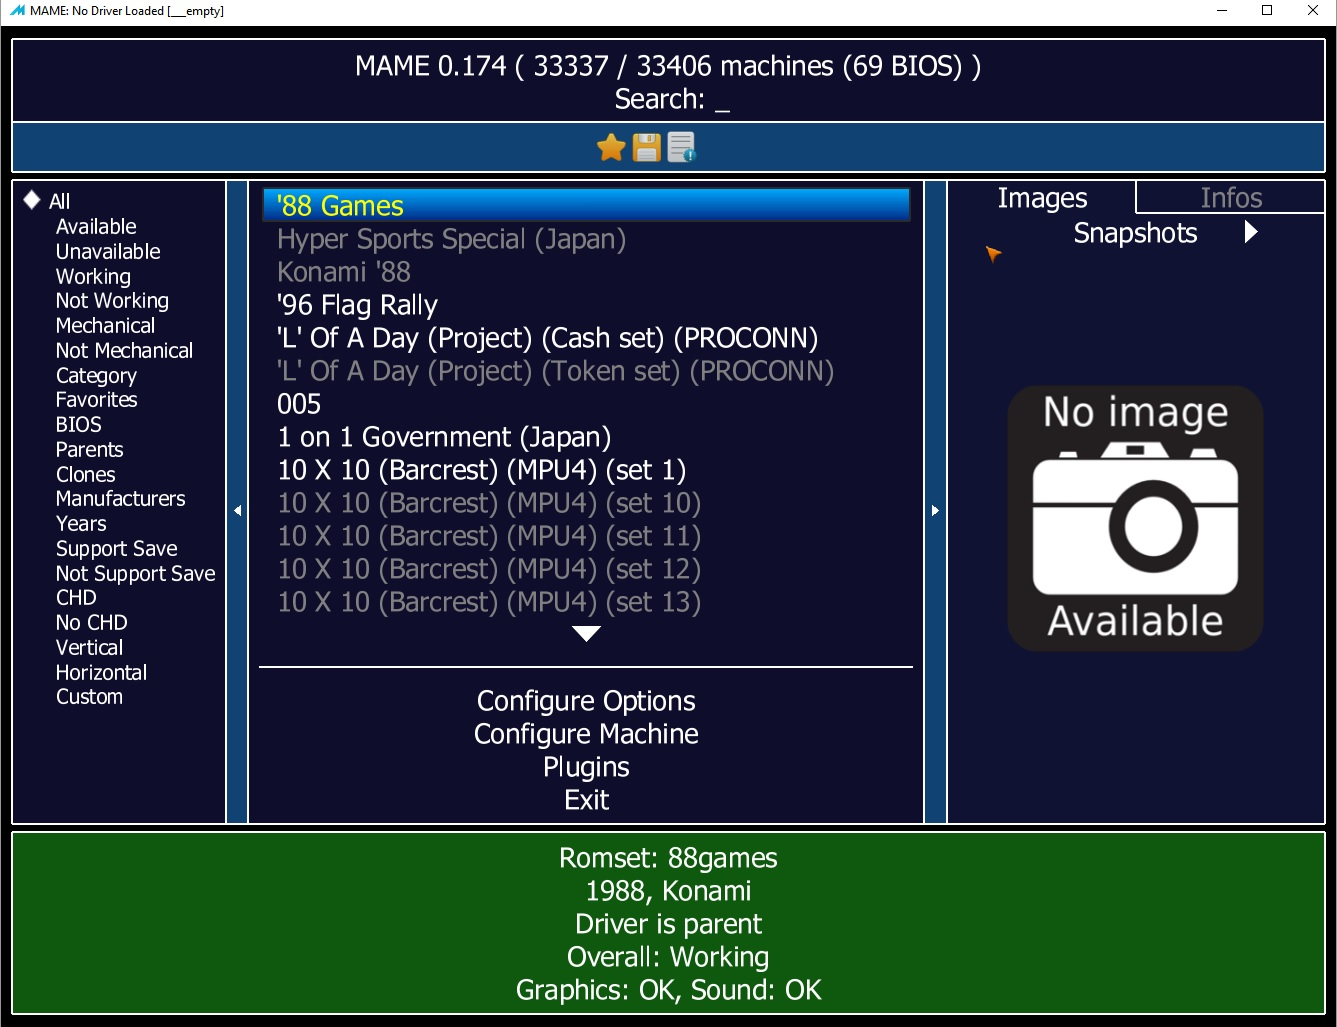 Atomiswave bios mame32 | What Is the Best Way to Add BIOS Files to